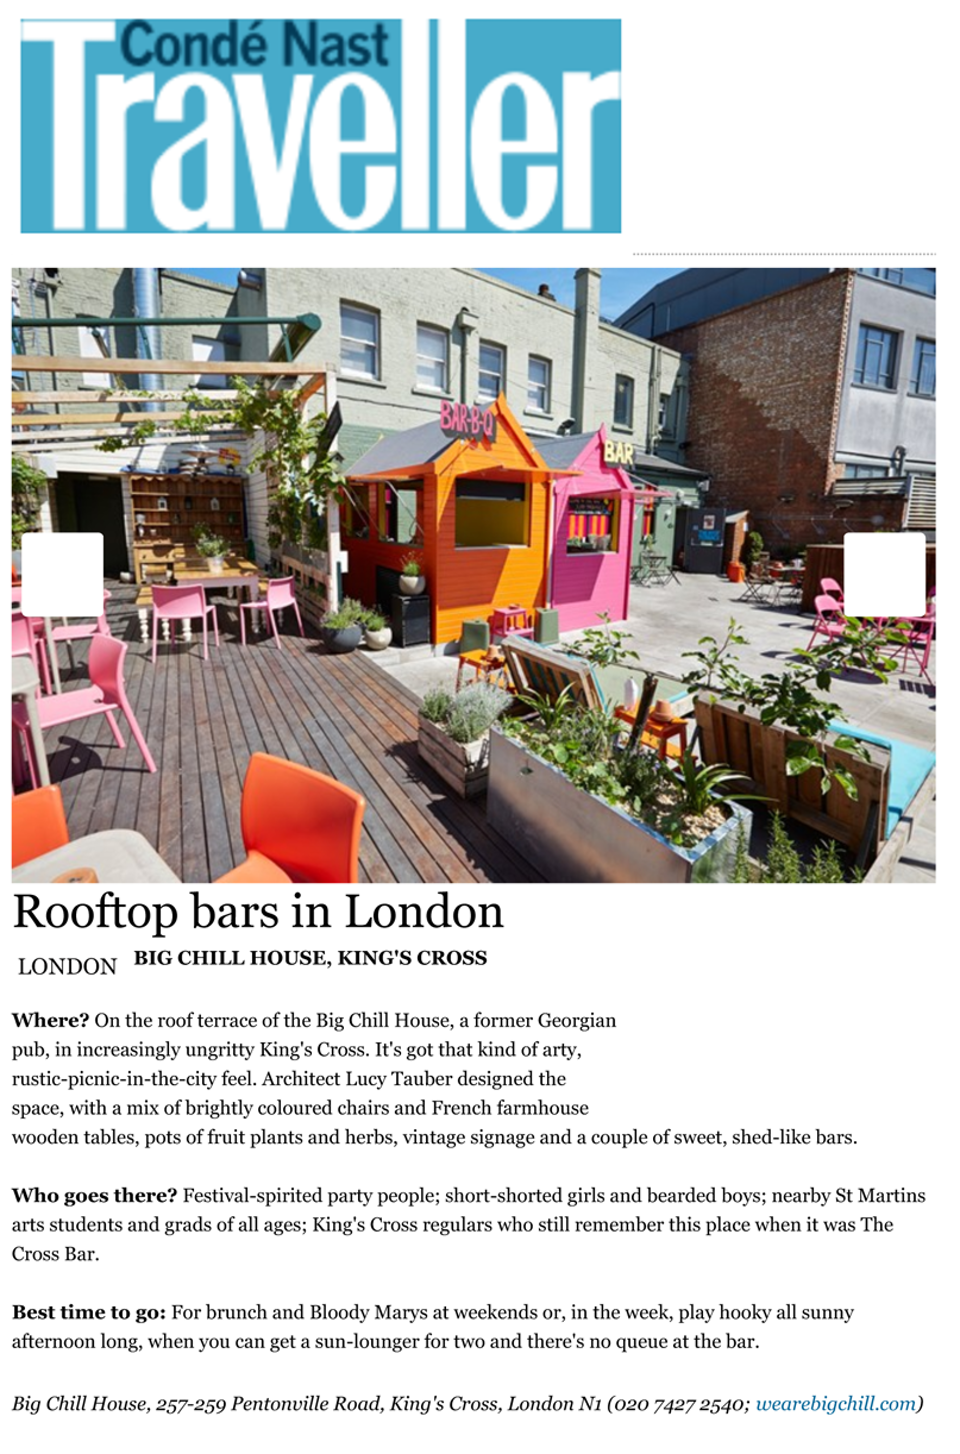 Best Rooftop Bars in London, Photo 4 of 13 (Condé Nast Traveller) 1